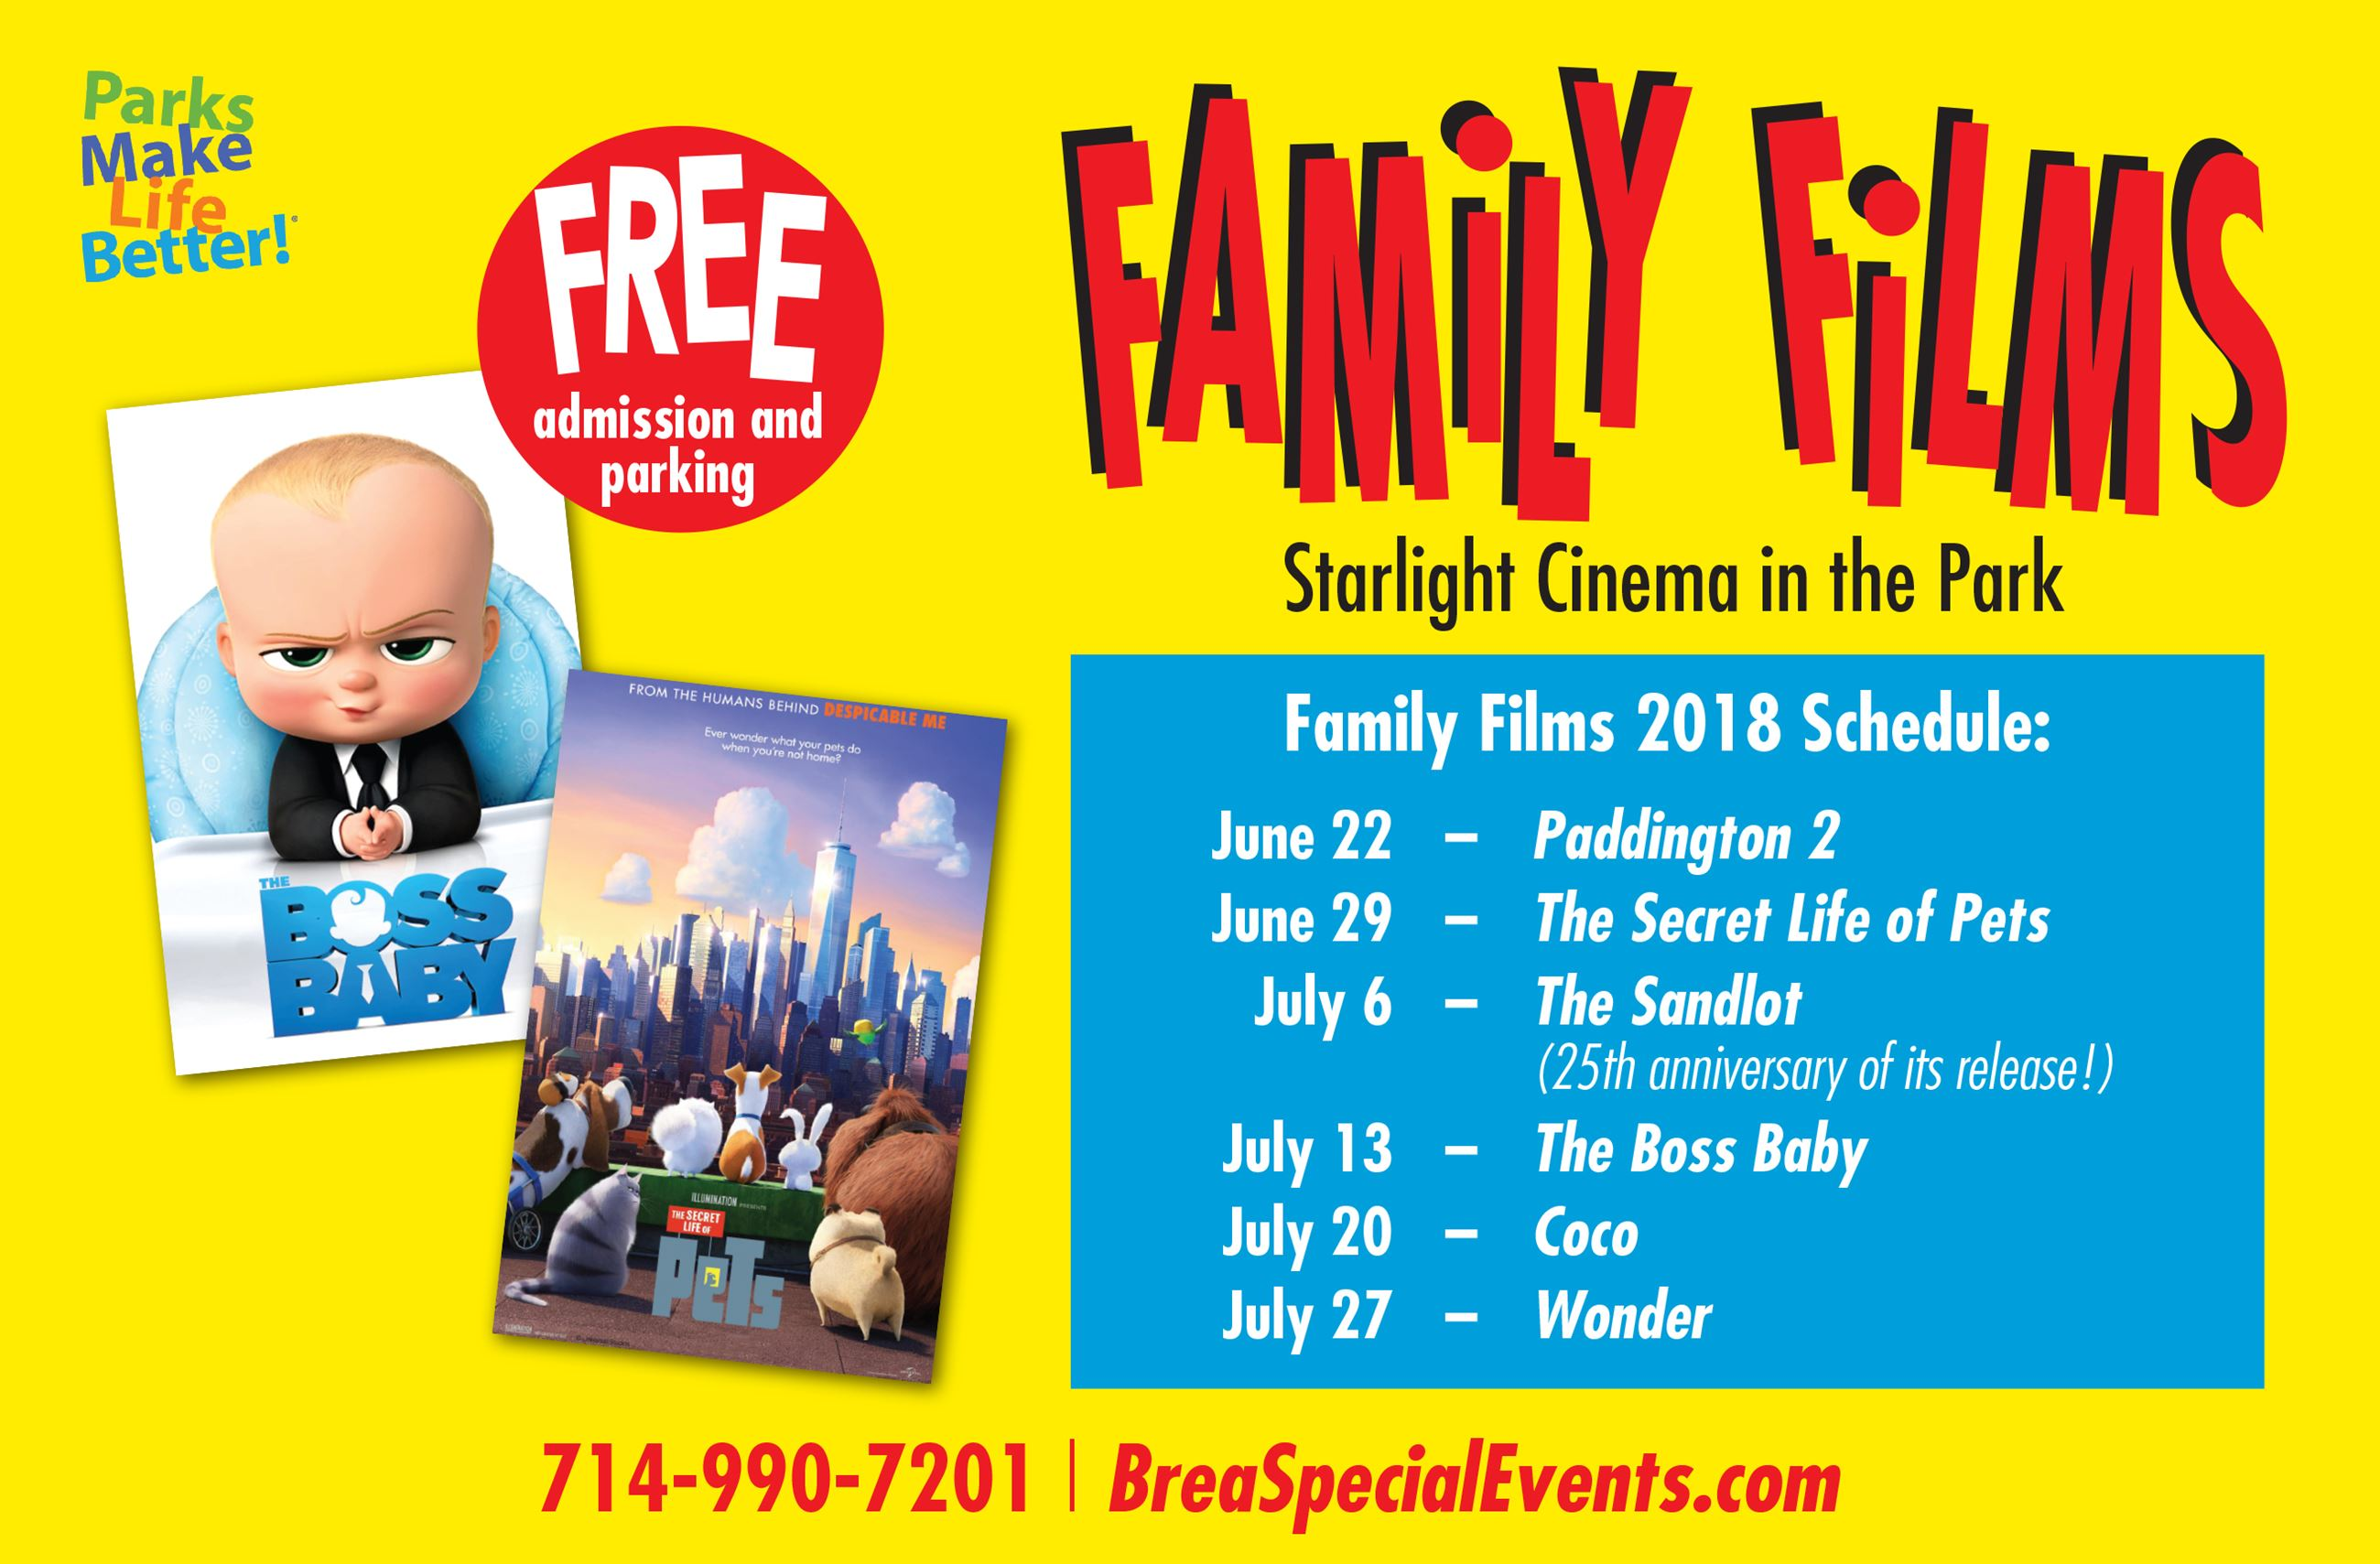 family films visix 18 all dates